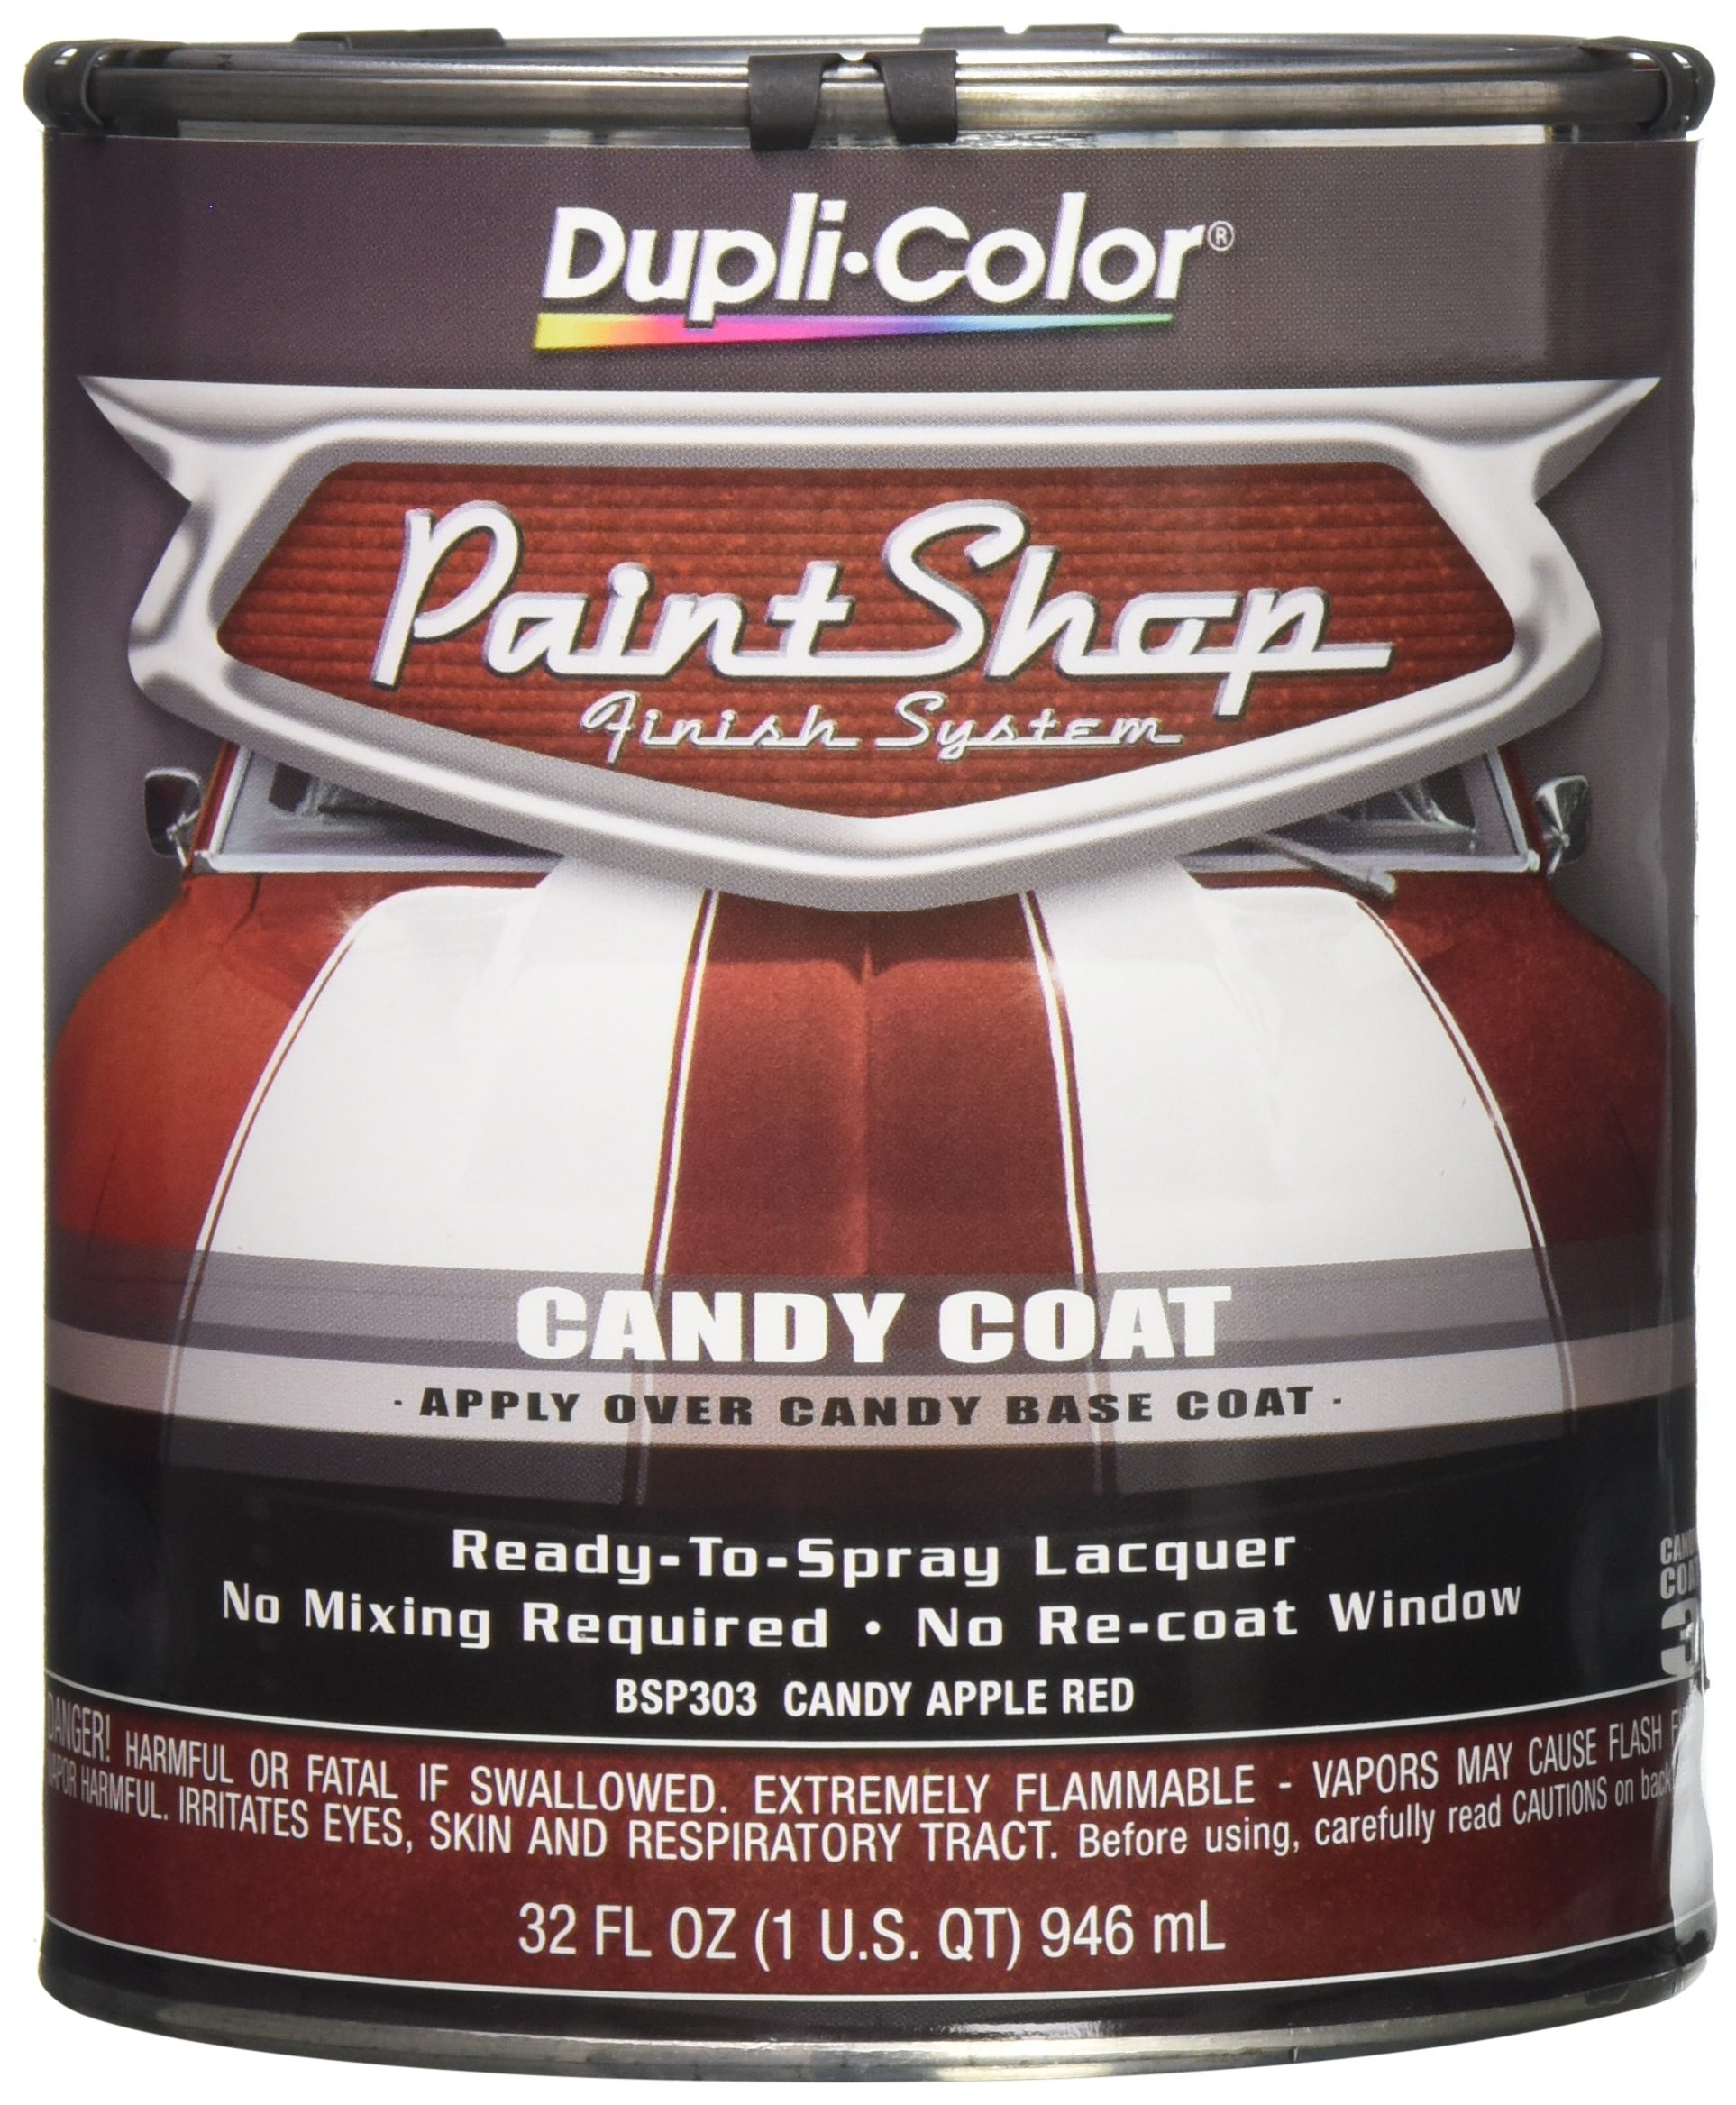 Dupli-Color BSP303 Candy Apple Red Paint Shop Finish System - 32 oz.